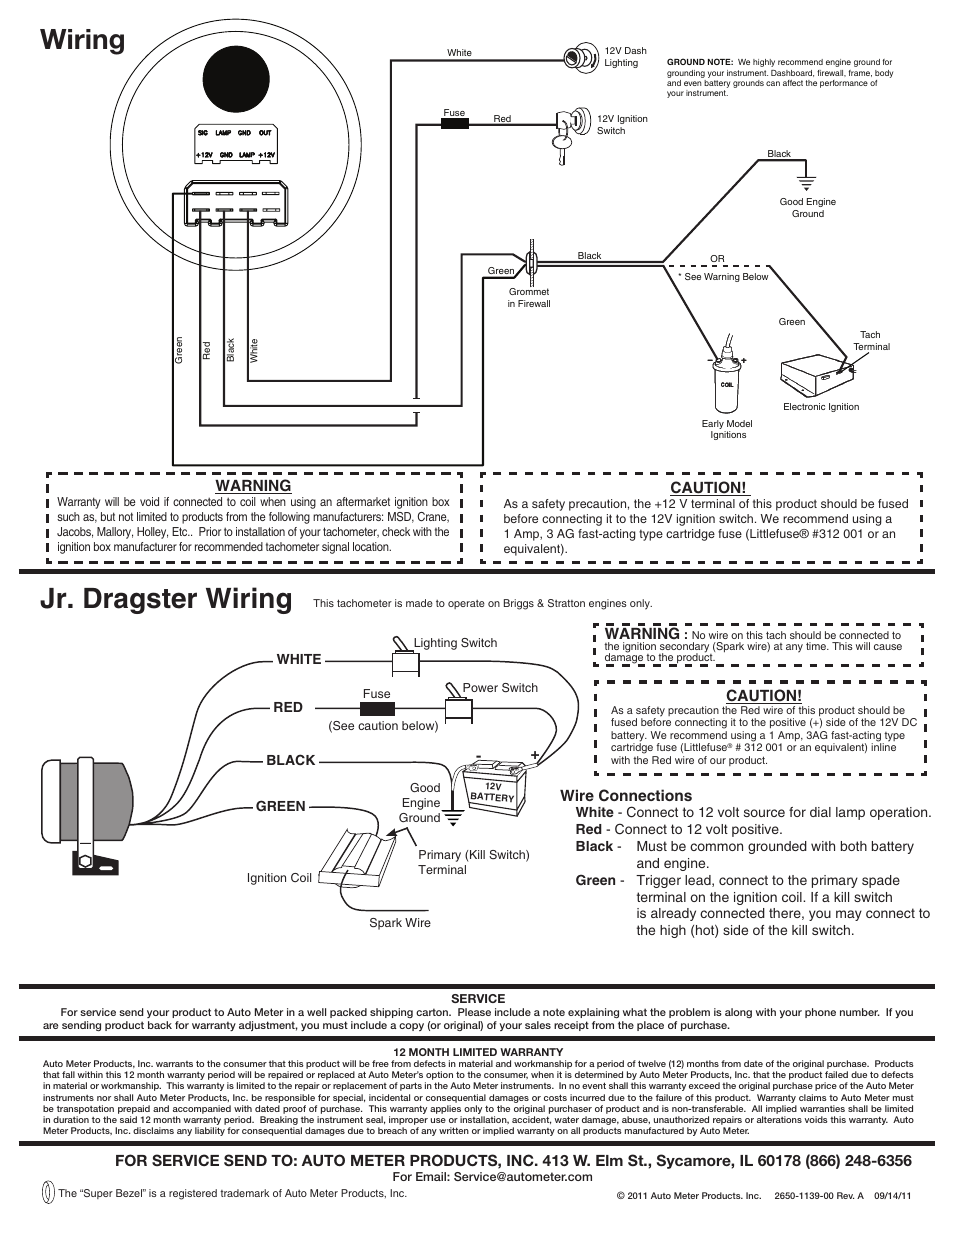 Wiring Jr Dragster Auto Meter 5780 User Manual Page 2 Tach To Msd 6al Box